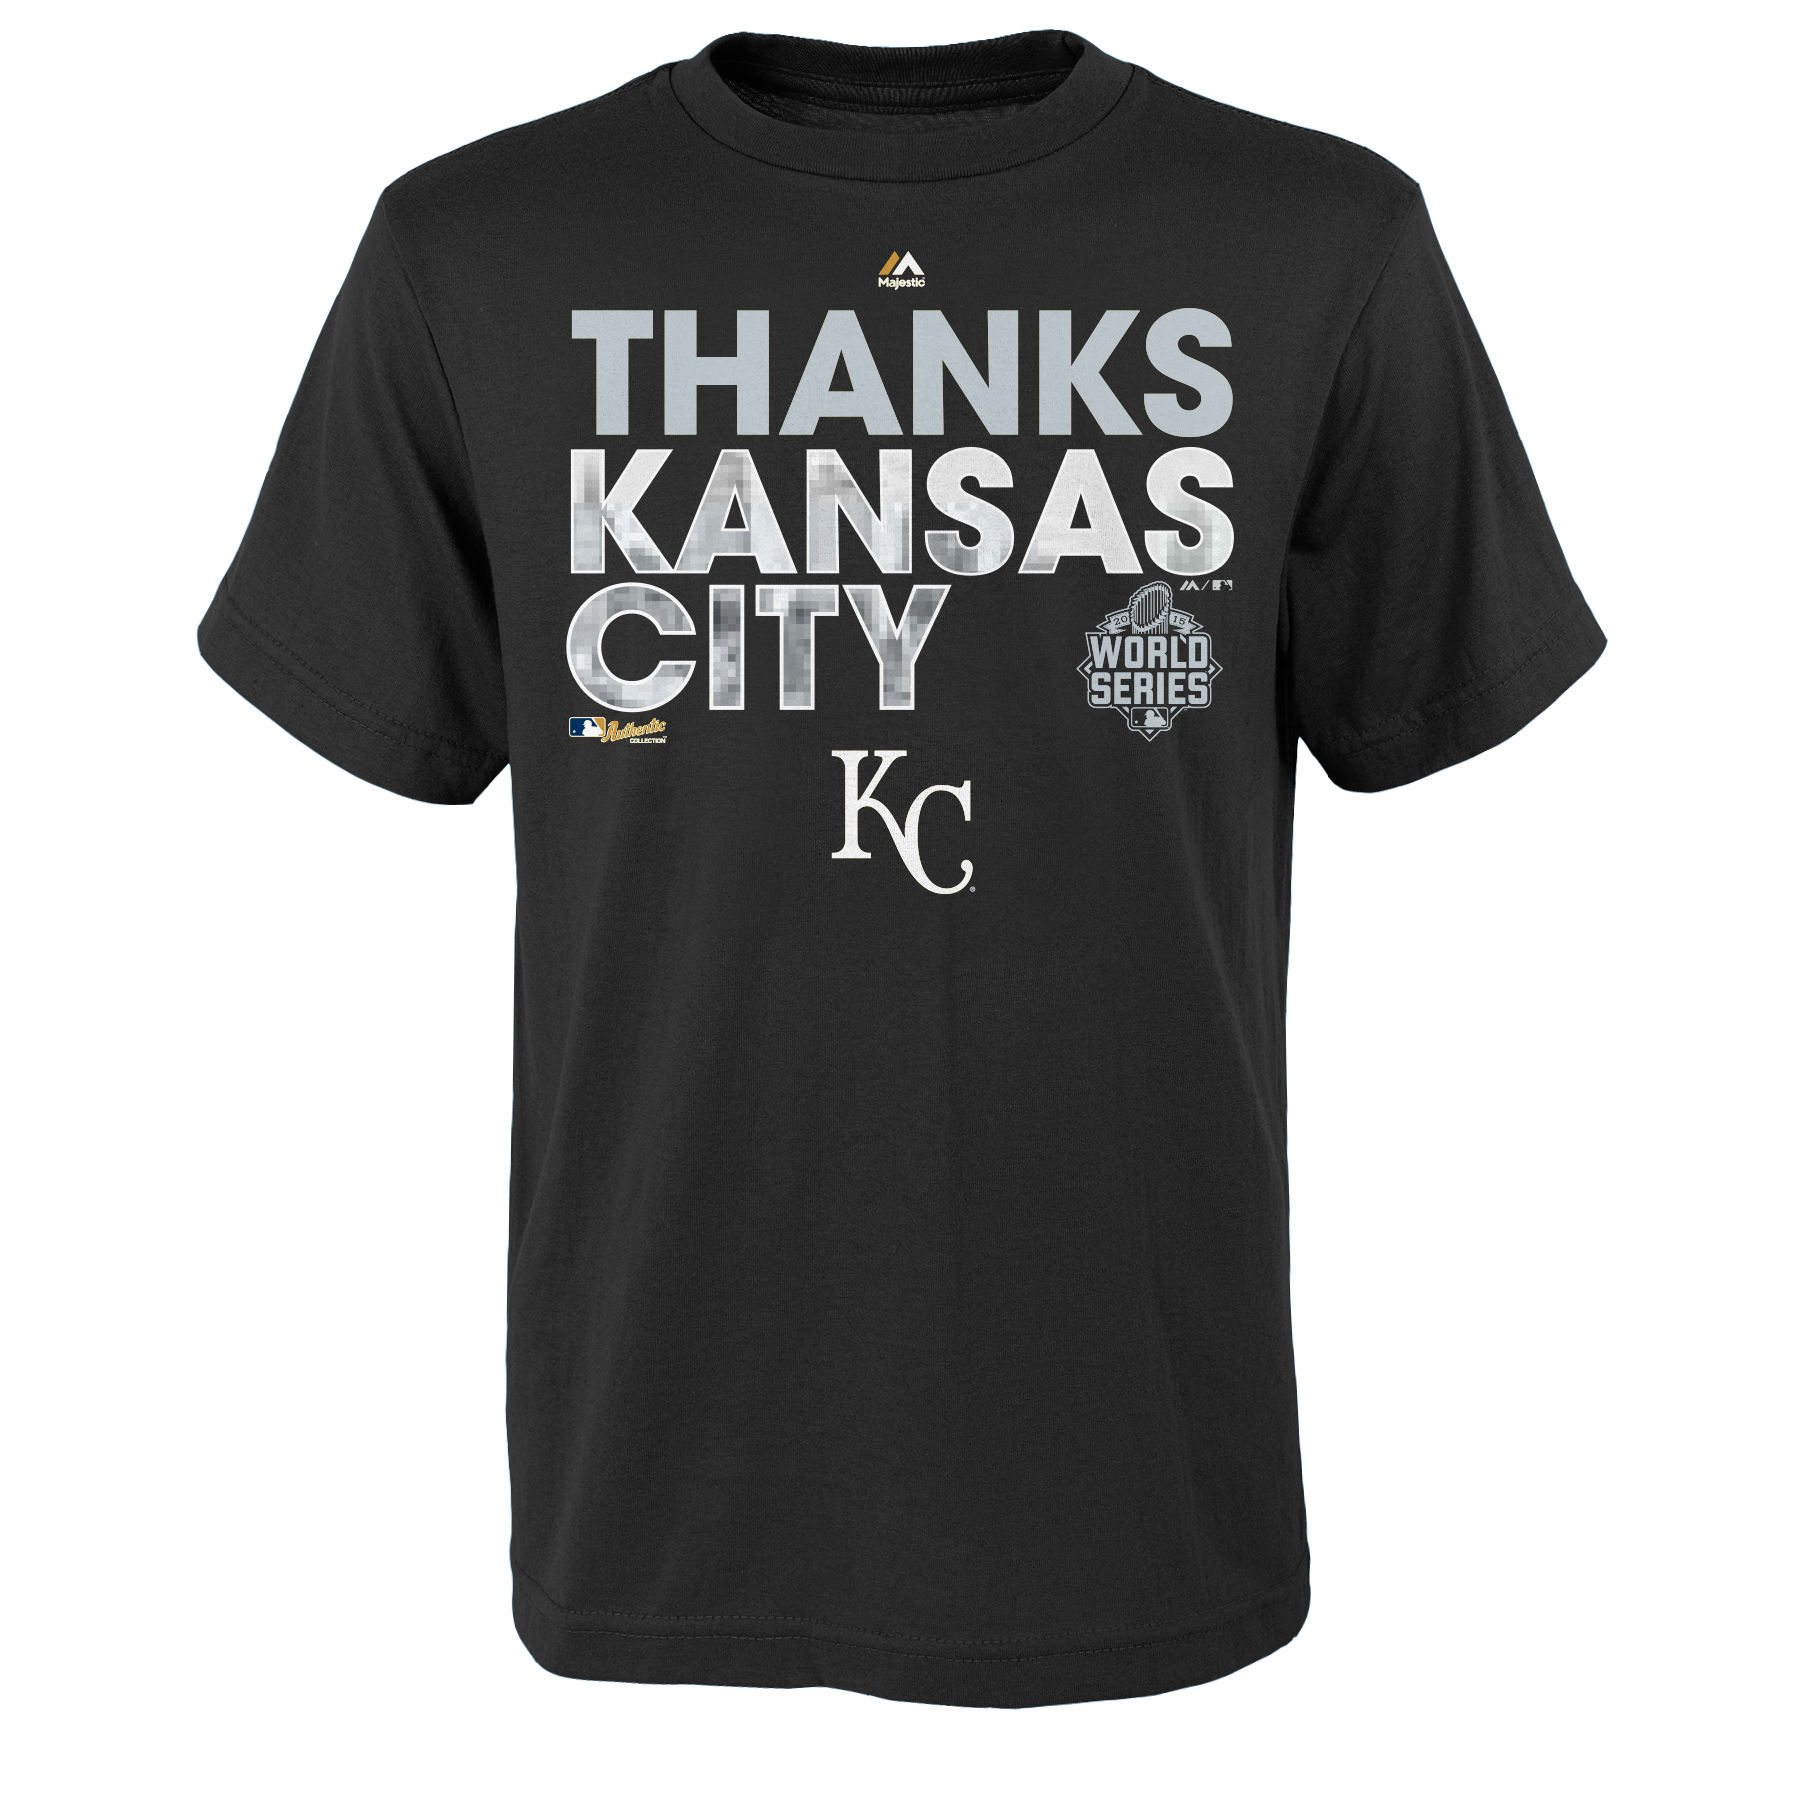 Kansas City Royals Majestic Youth 2015 World Series Champions City Parade T-Shirt - Royal - Yth S